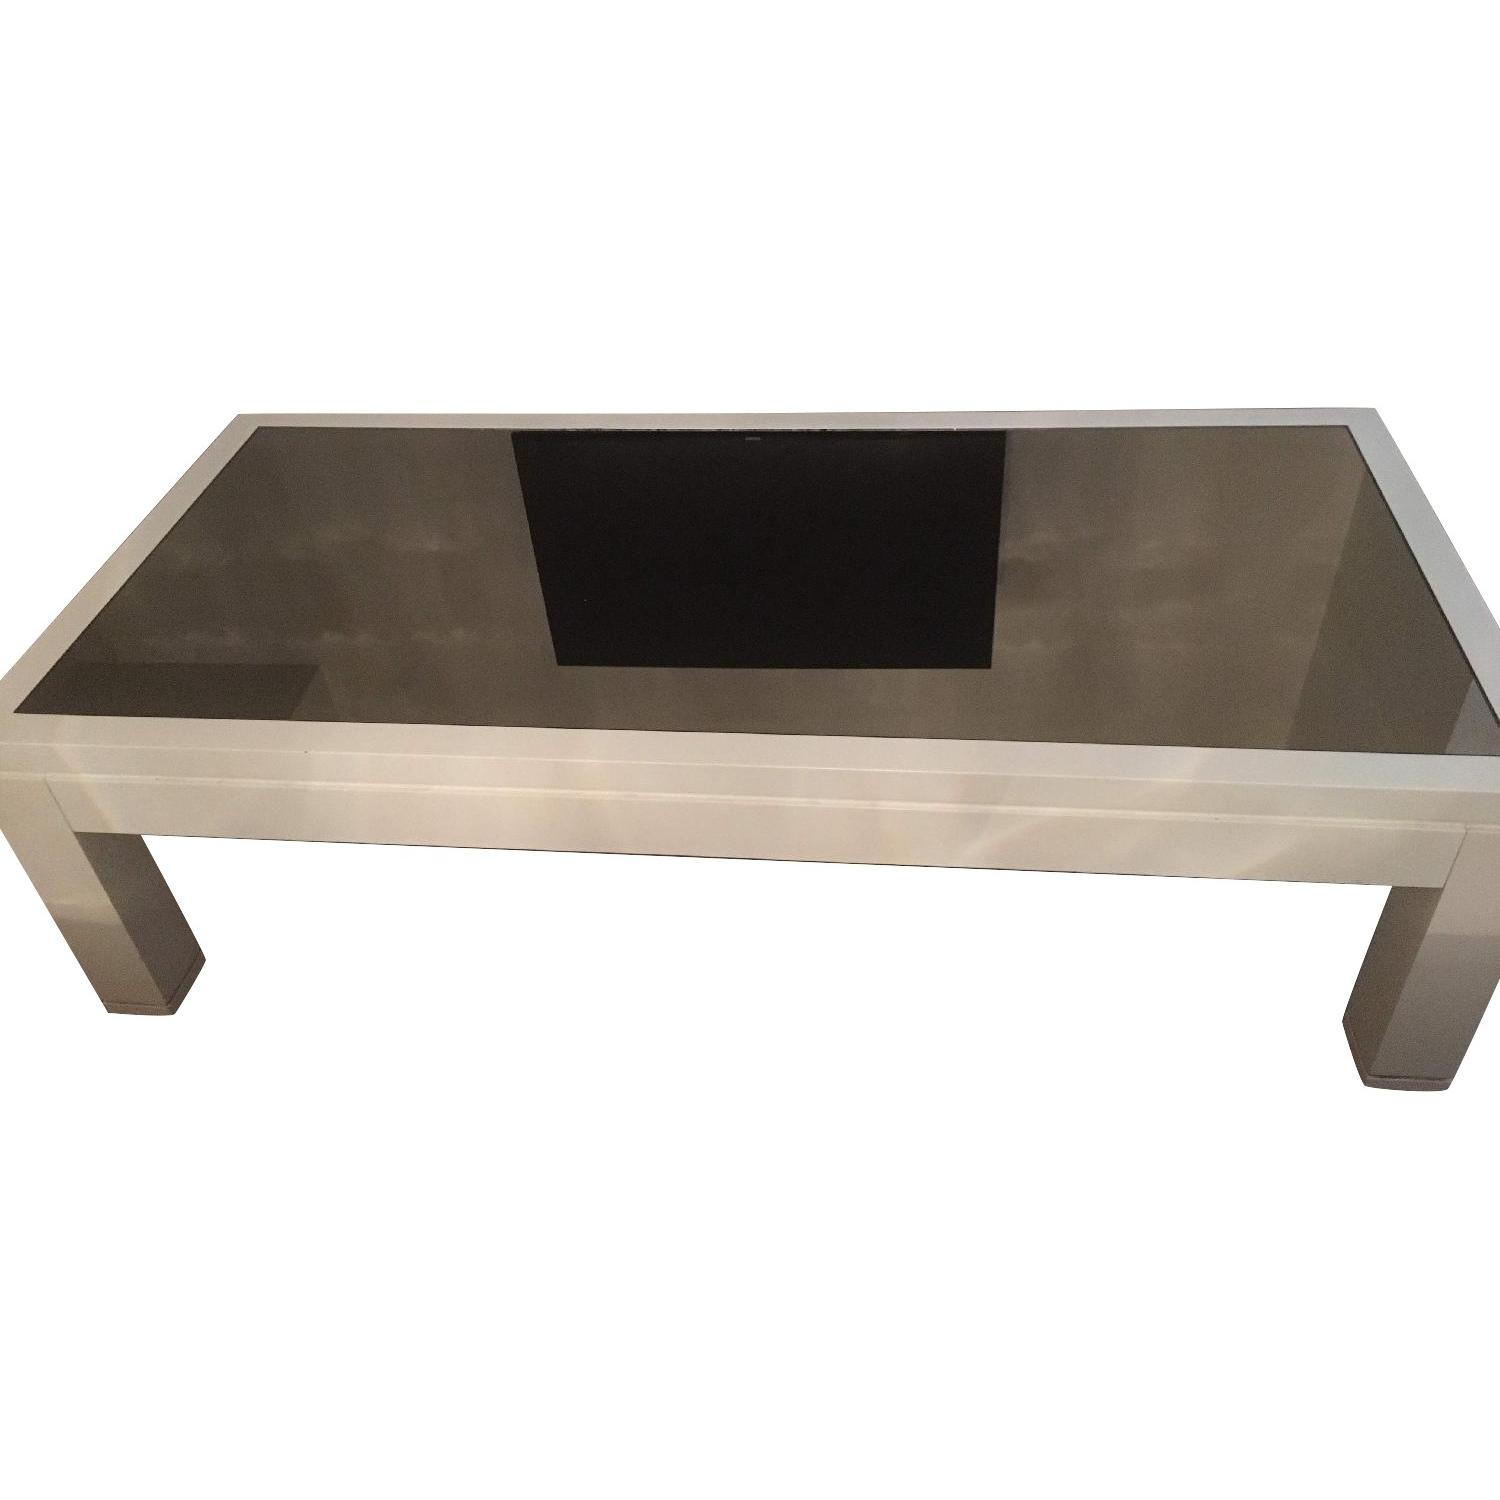 Mitchell Gold + Bob Williams Mirrored Lacquer Coffee Table